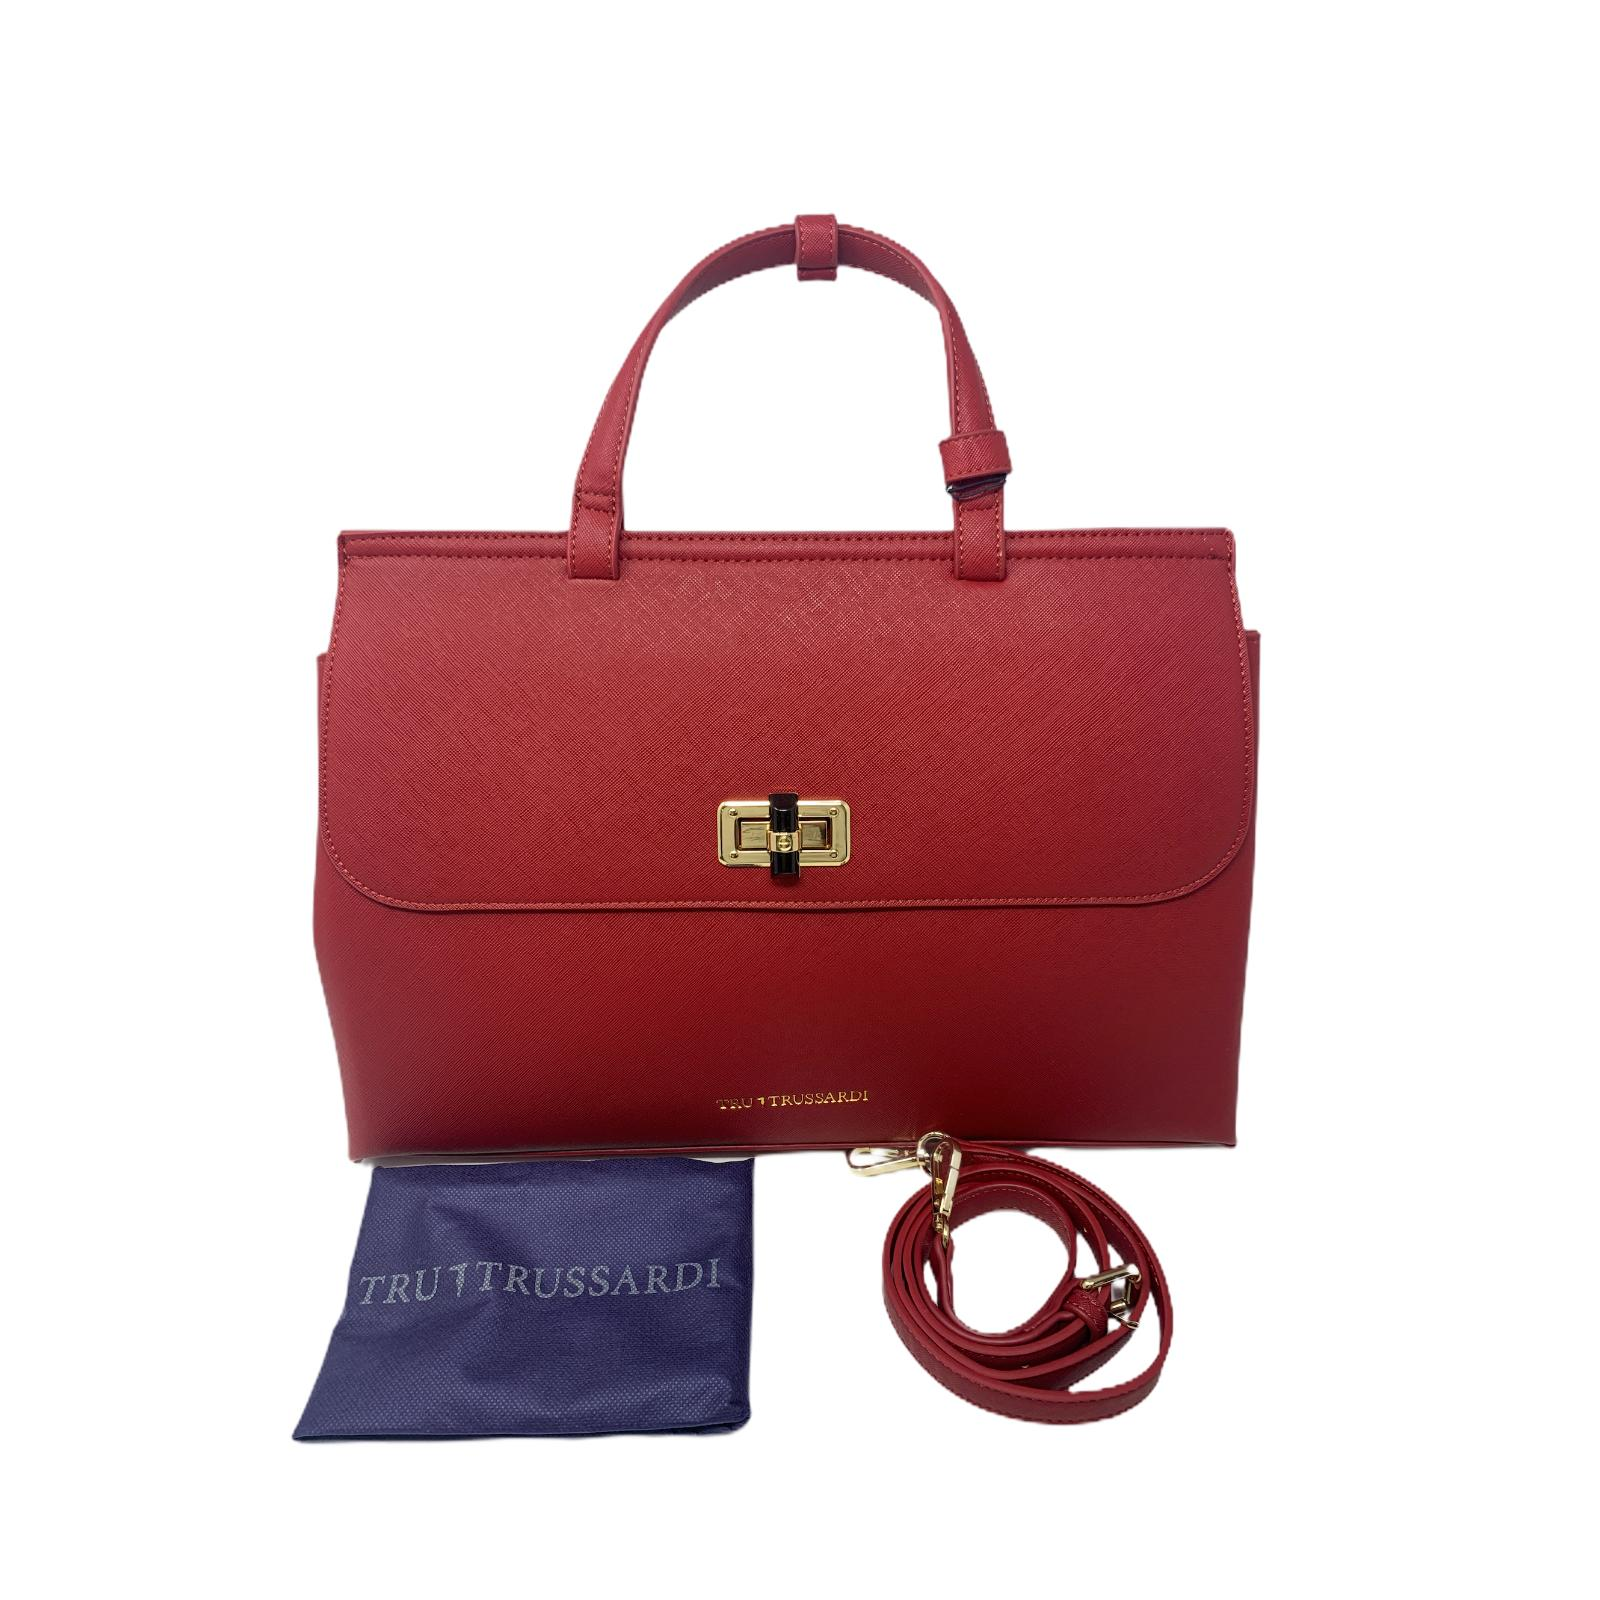 Borsa Tru Trussardi Shopper Bag Donna Bordeaux